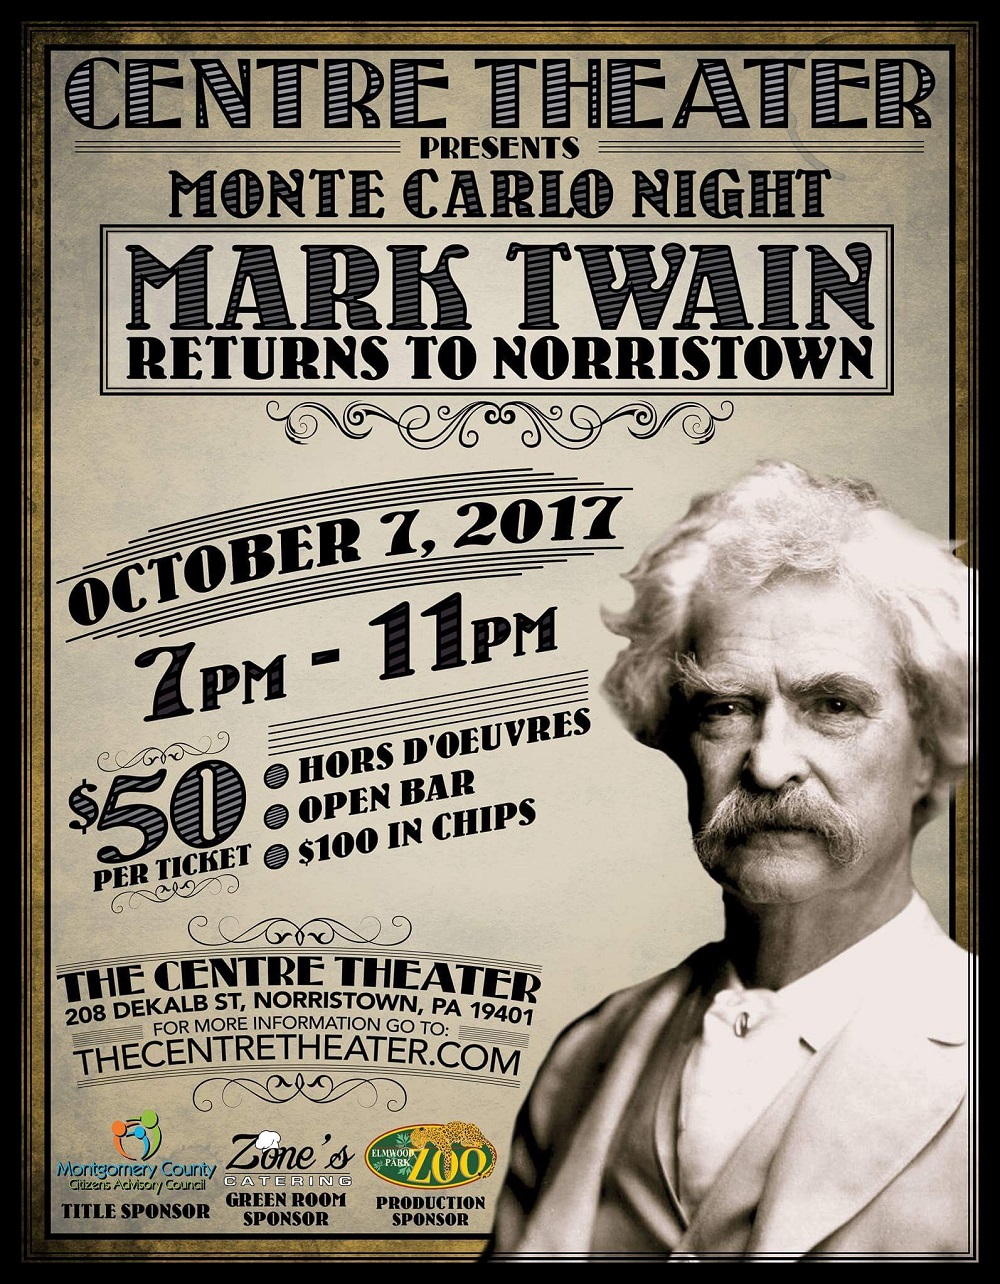 Mark Twain Returns to The Centre Theater in Norristown